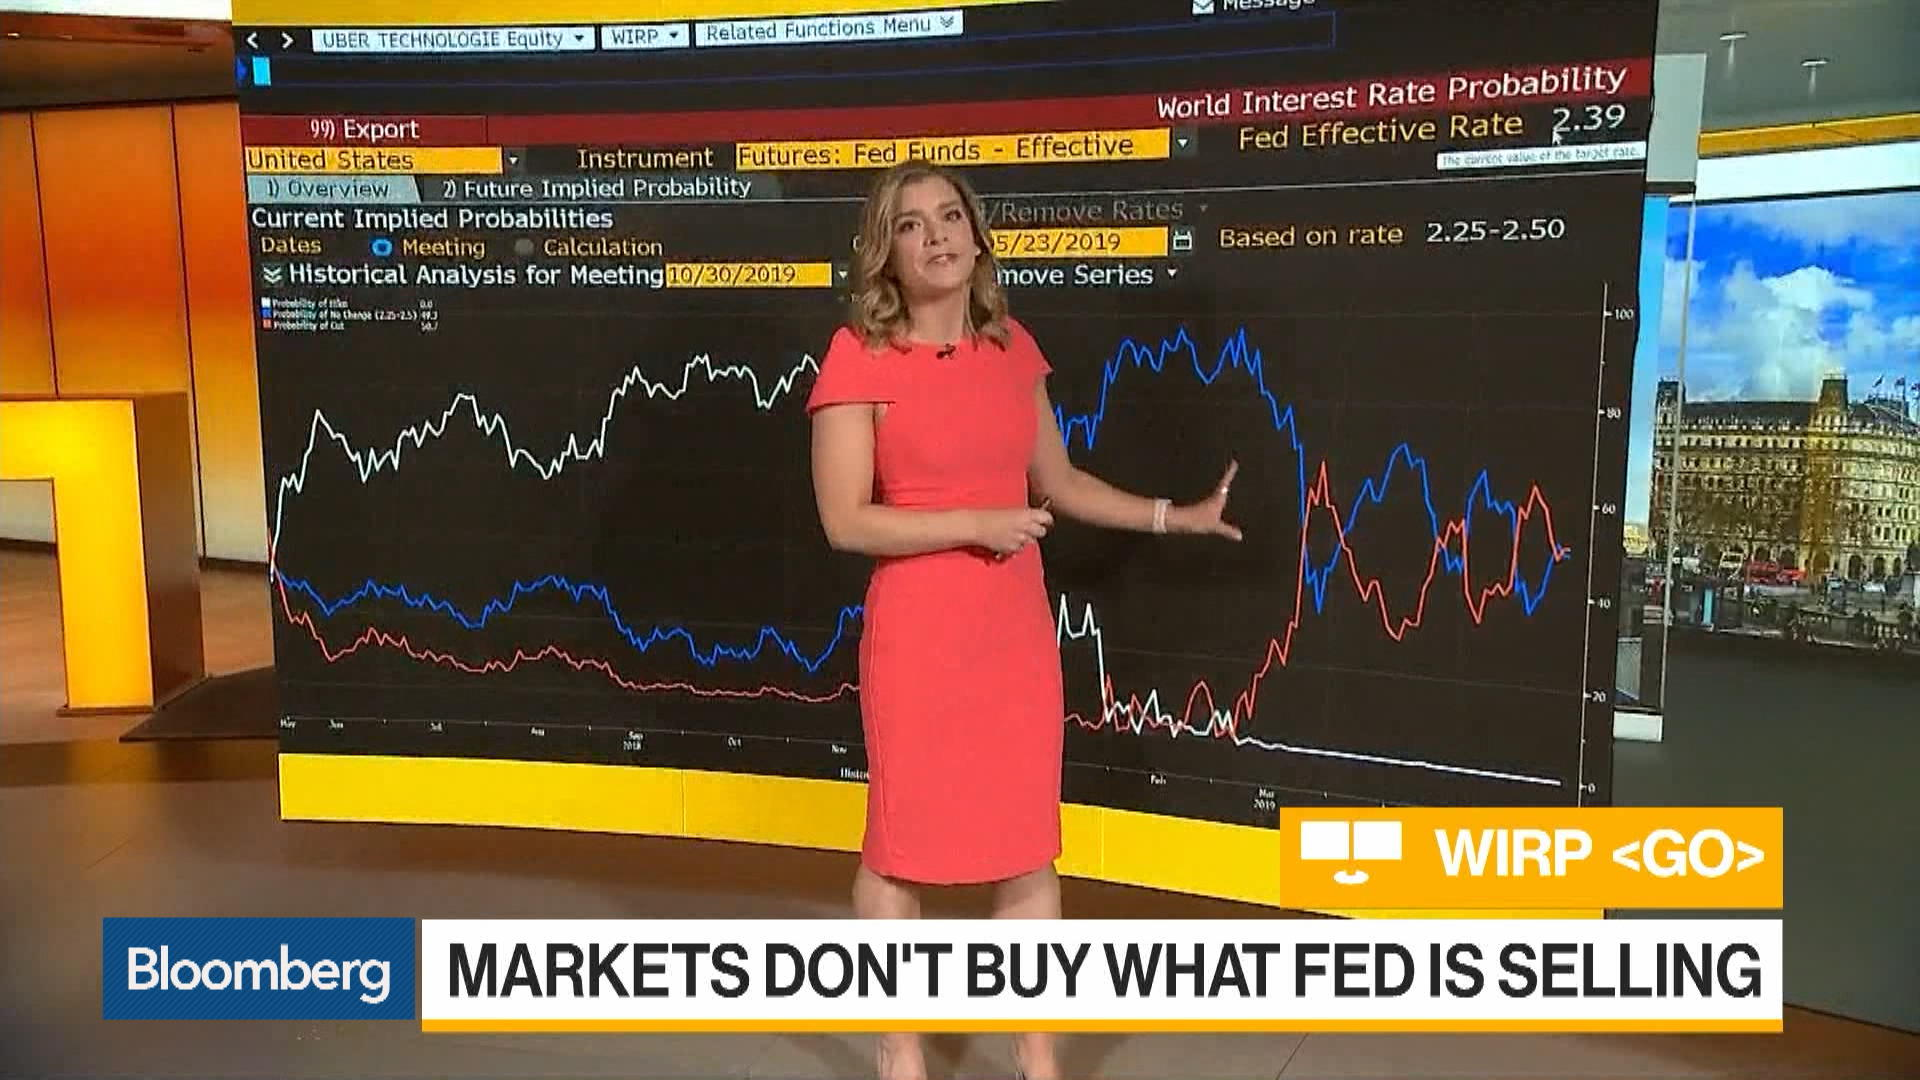 Markets Don't Buy What Fed Is Selling